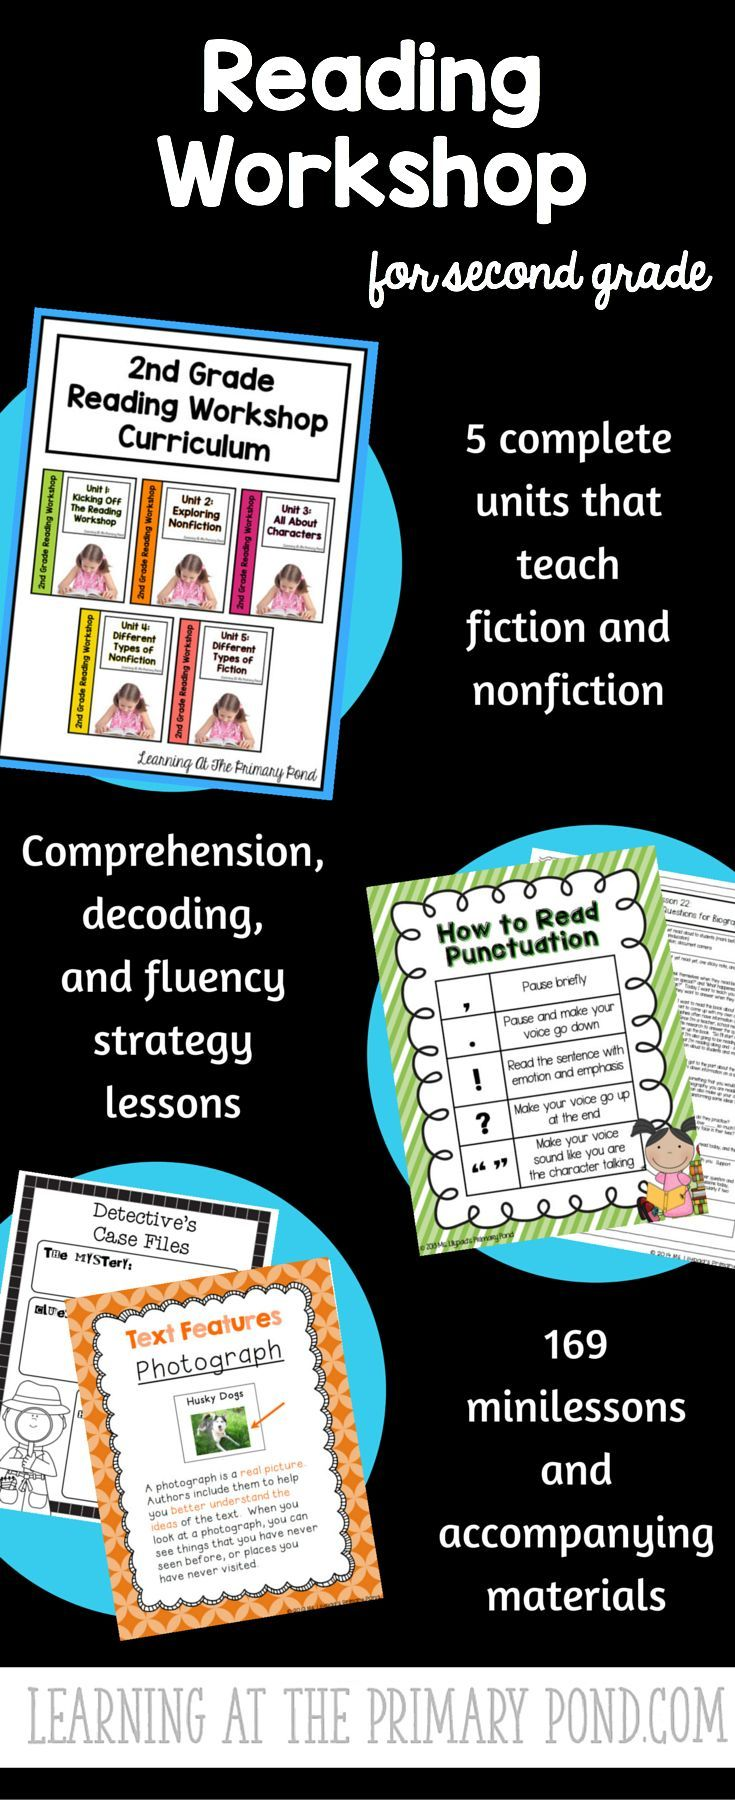 Worksheet Second Grade Reading Material 1000 images about daily five and literacy centers ideas on pinterest reading workshop minilessons comprehension decoding fluency skills posters printable materials rubrics more for